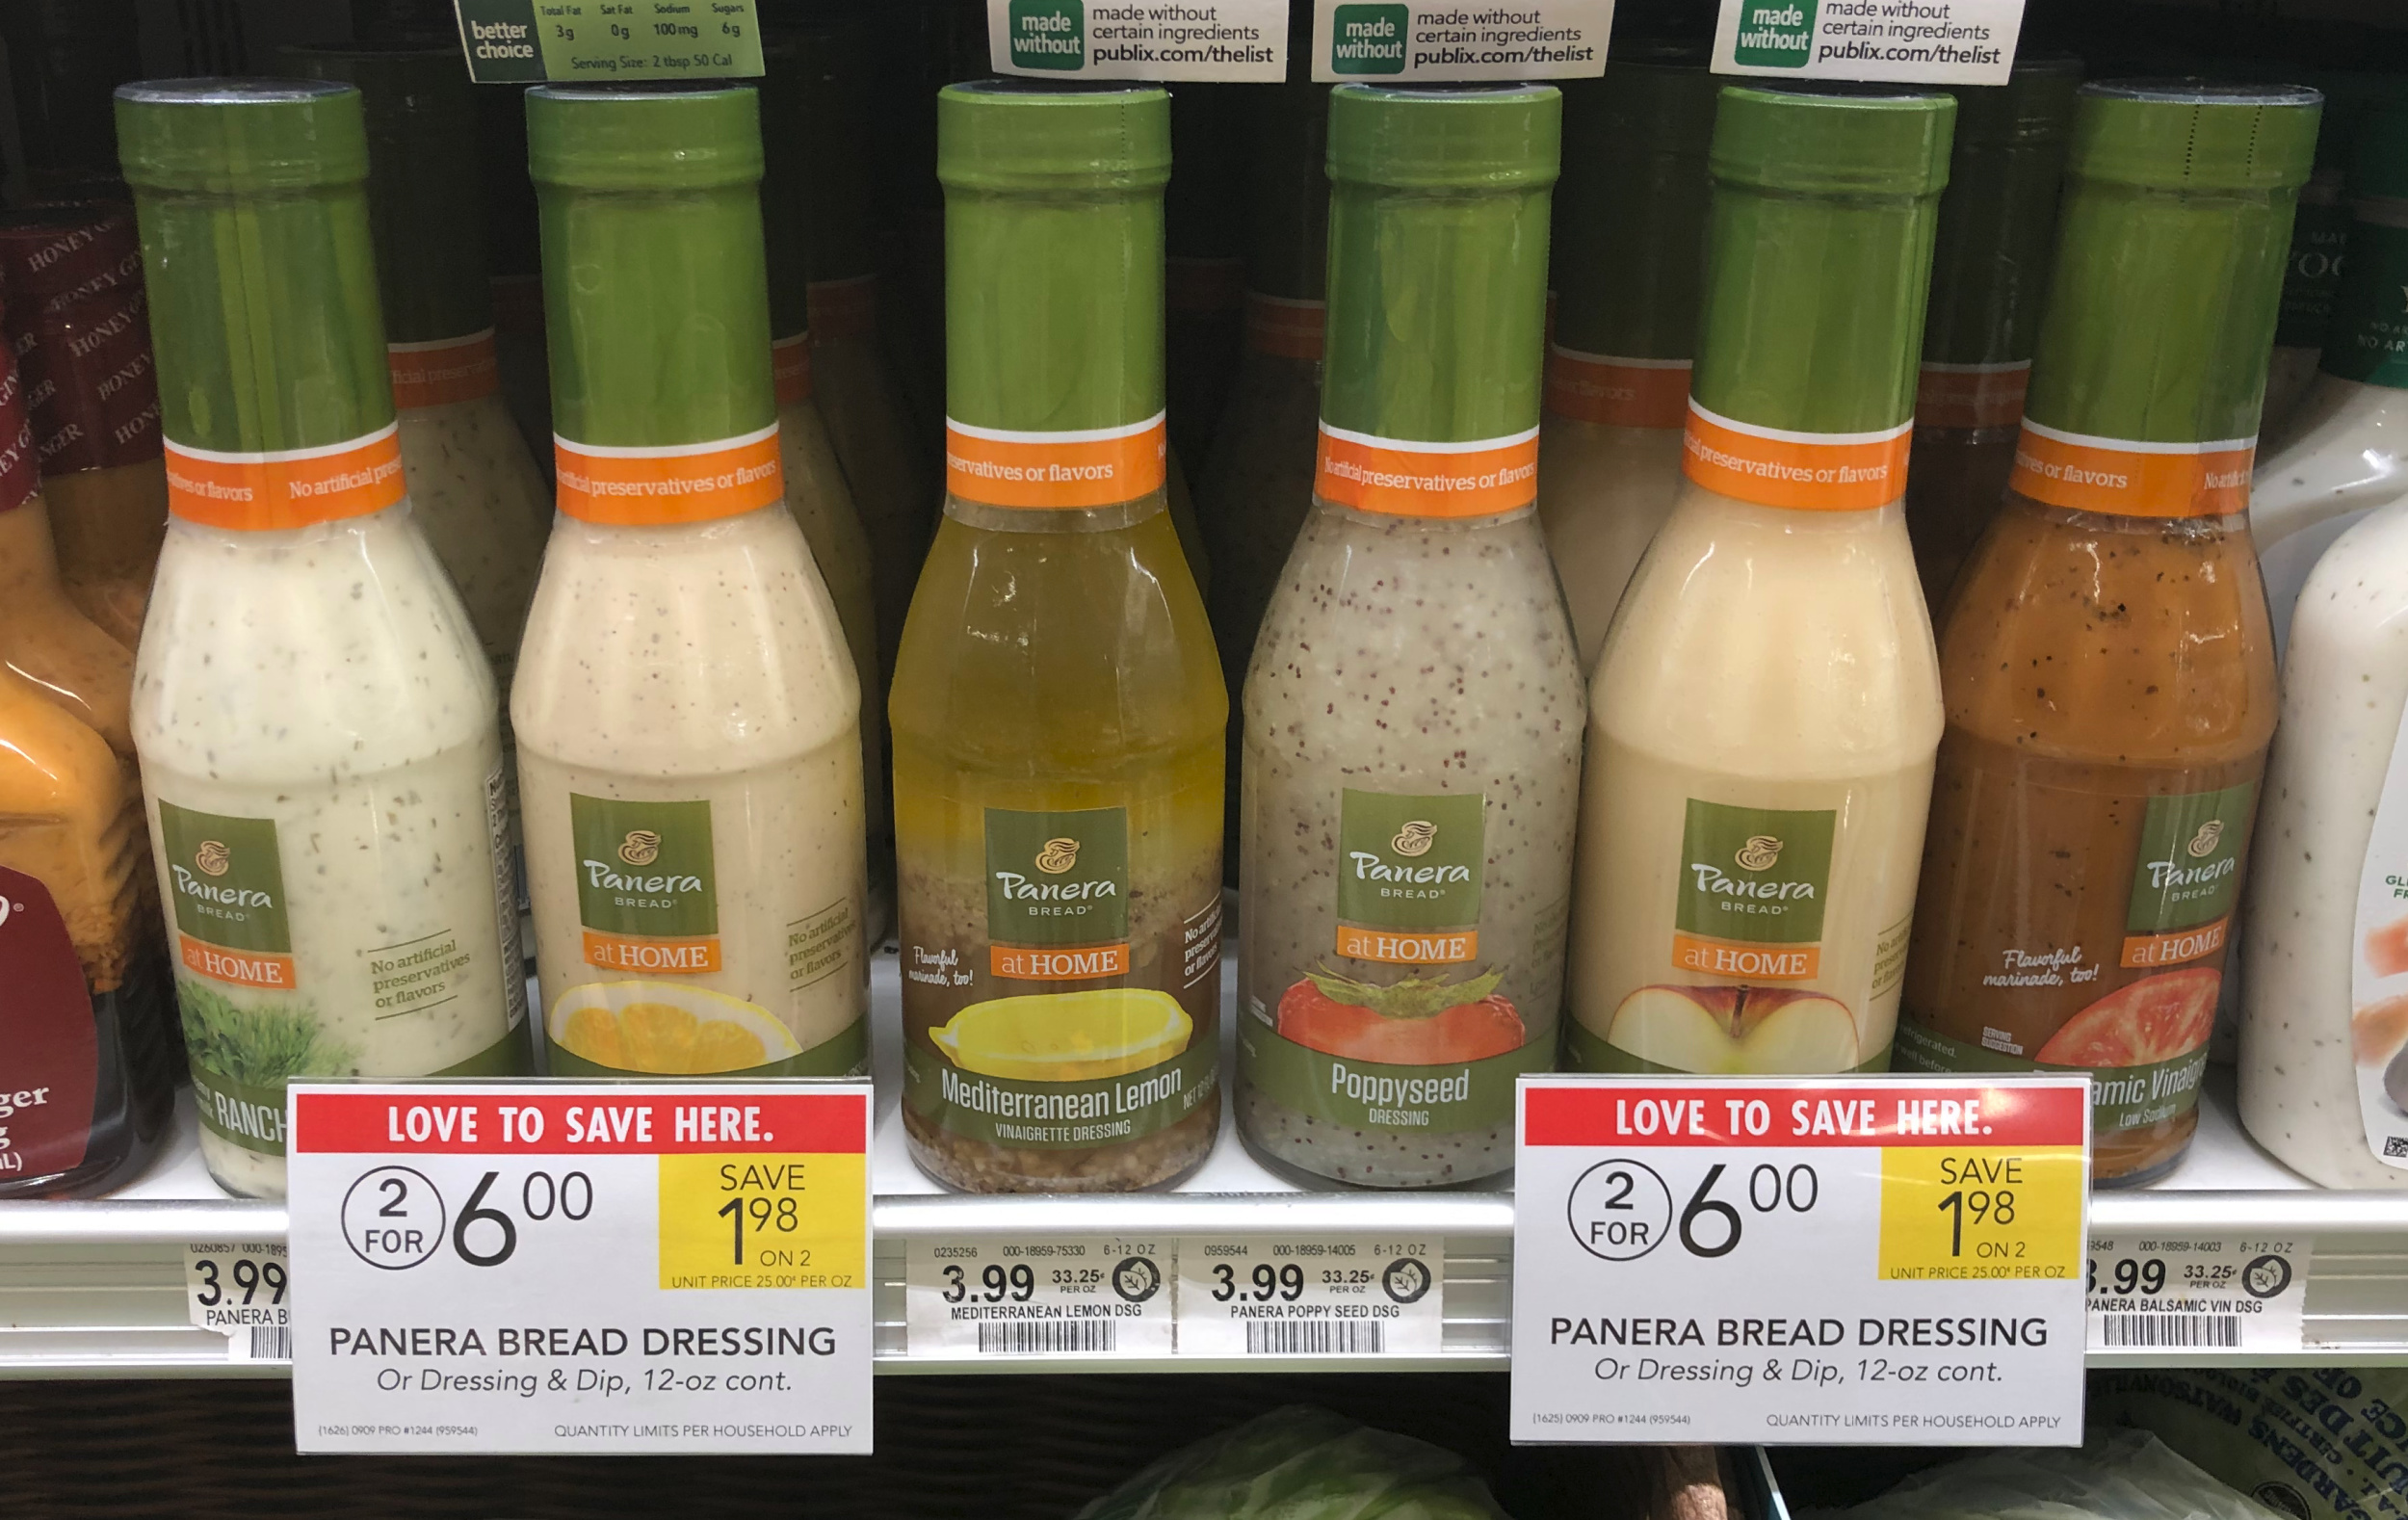 Panera Bread Salad Dressing As Low As $1.80 At Publix on I Heart Publix